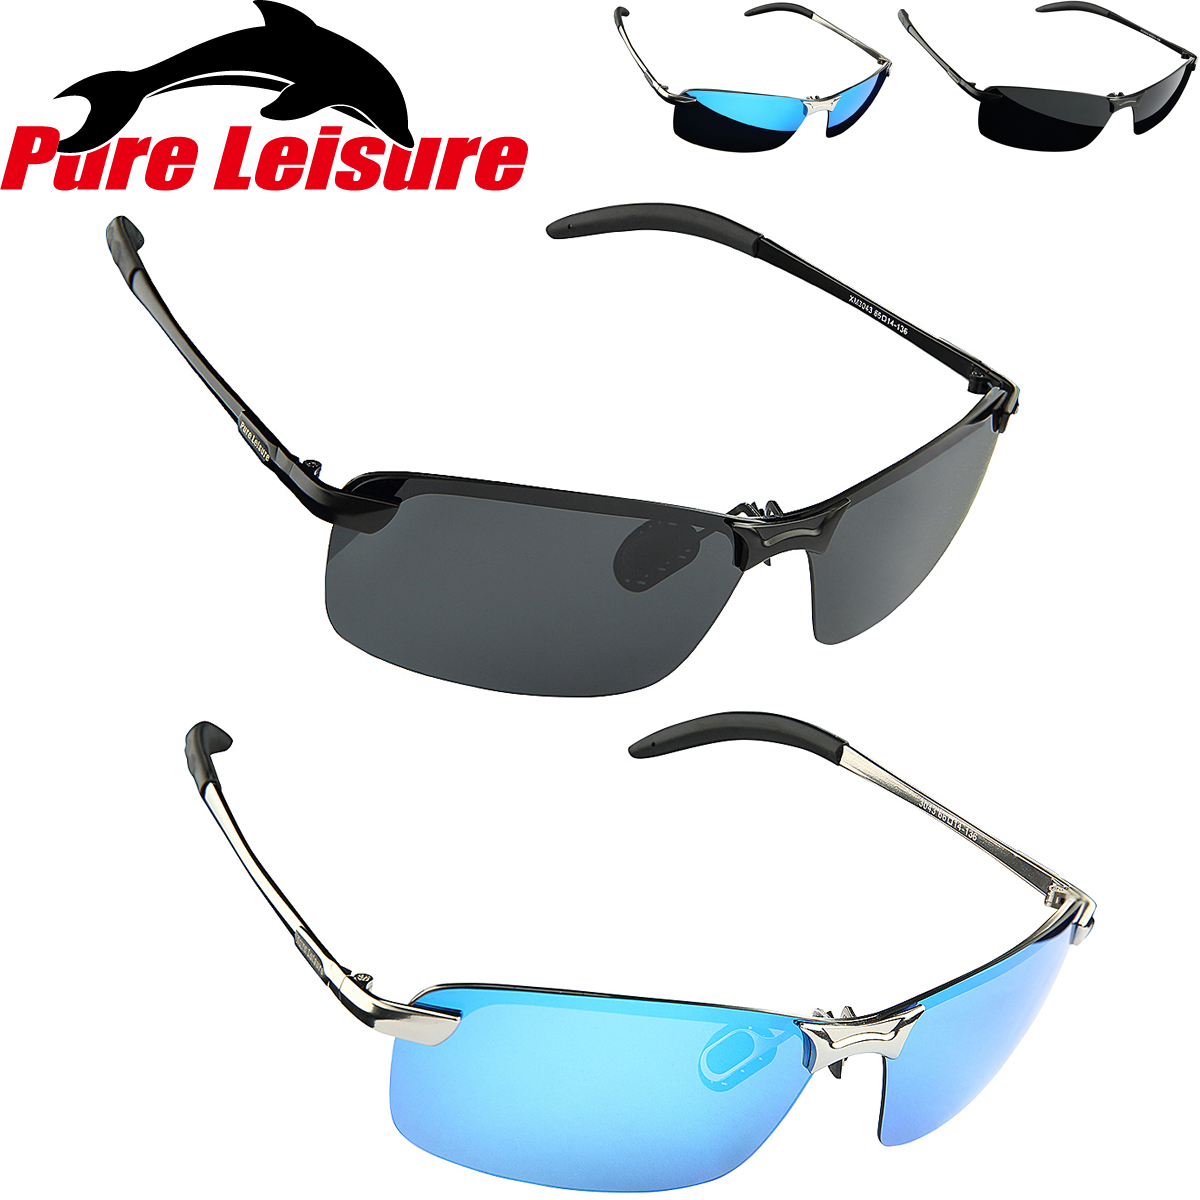 PureLeisure Fly Fishingnight Vision Glasses Camping Fishing Sport Sunglasses Oculos Polarizado Para Pesca Gafas Polarizadas